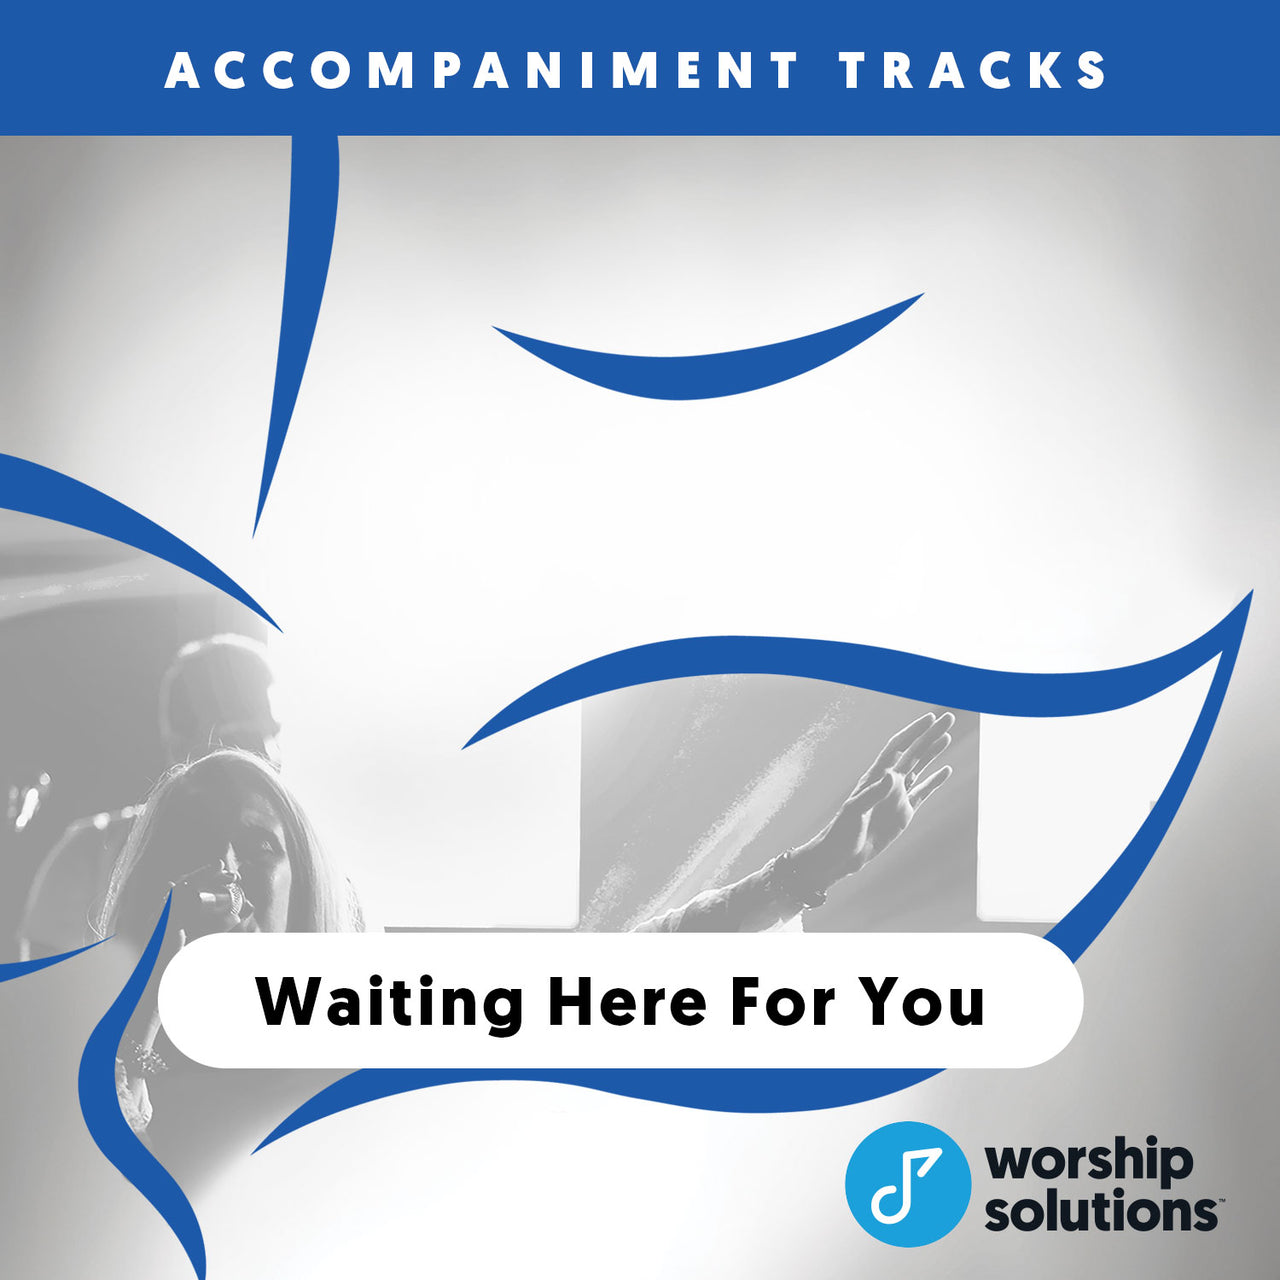 Waiting Here For You, Accompaniment Track